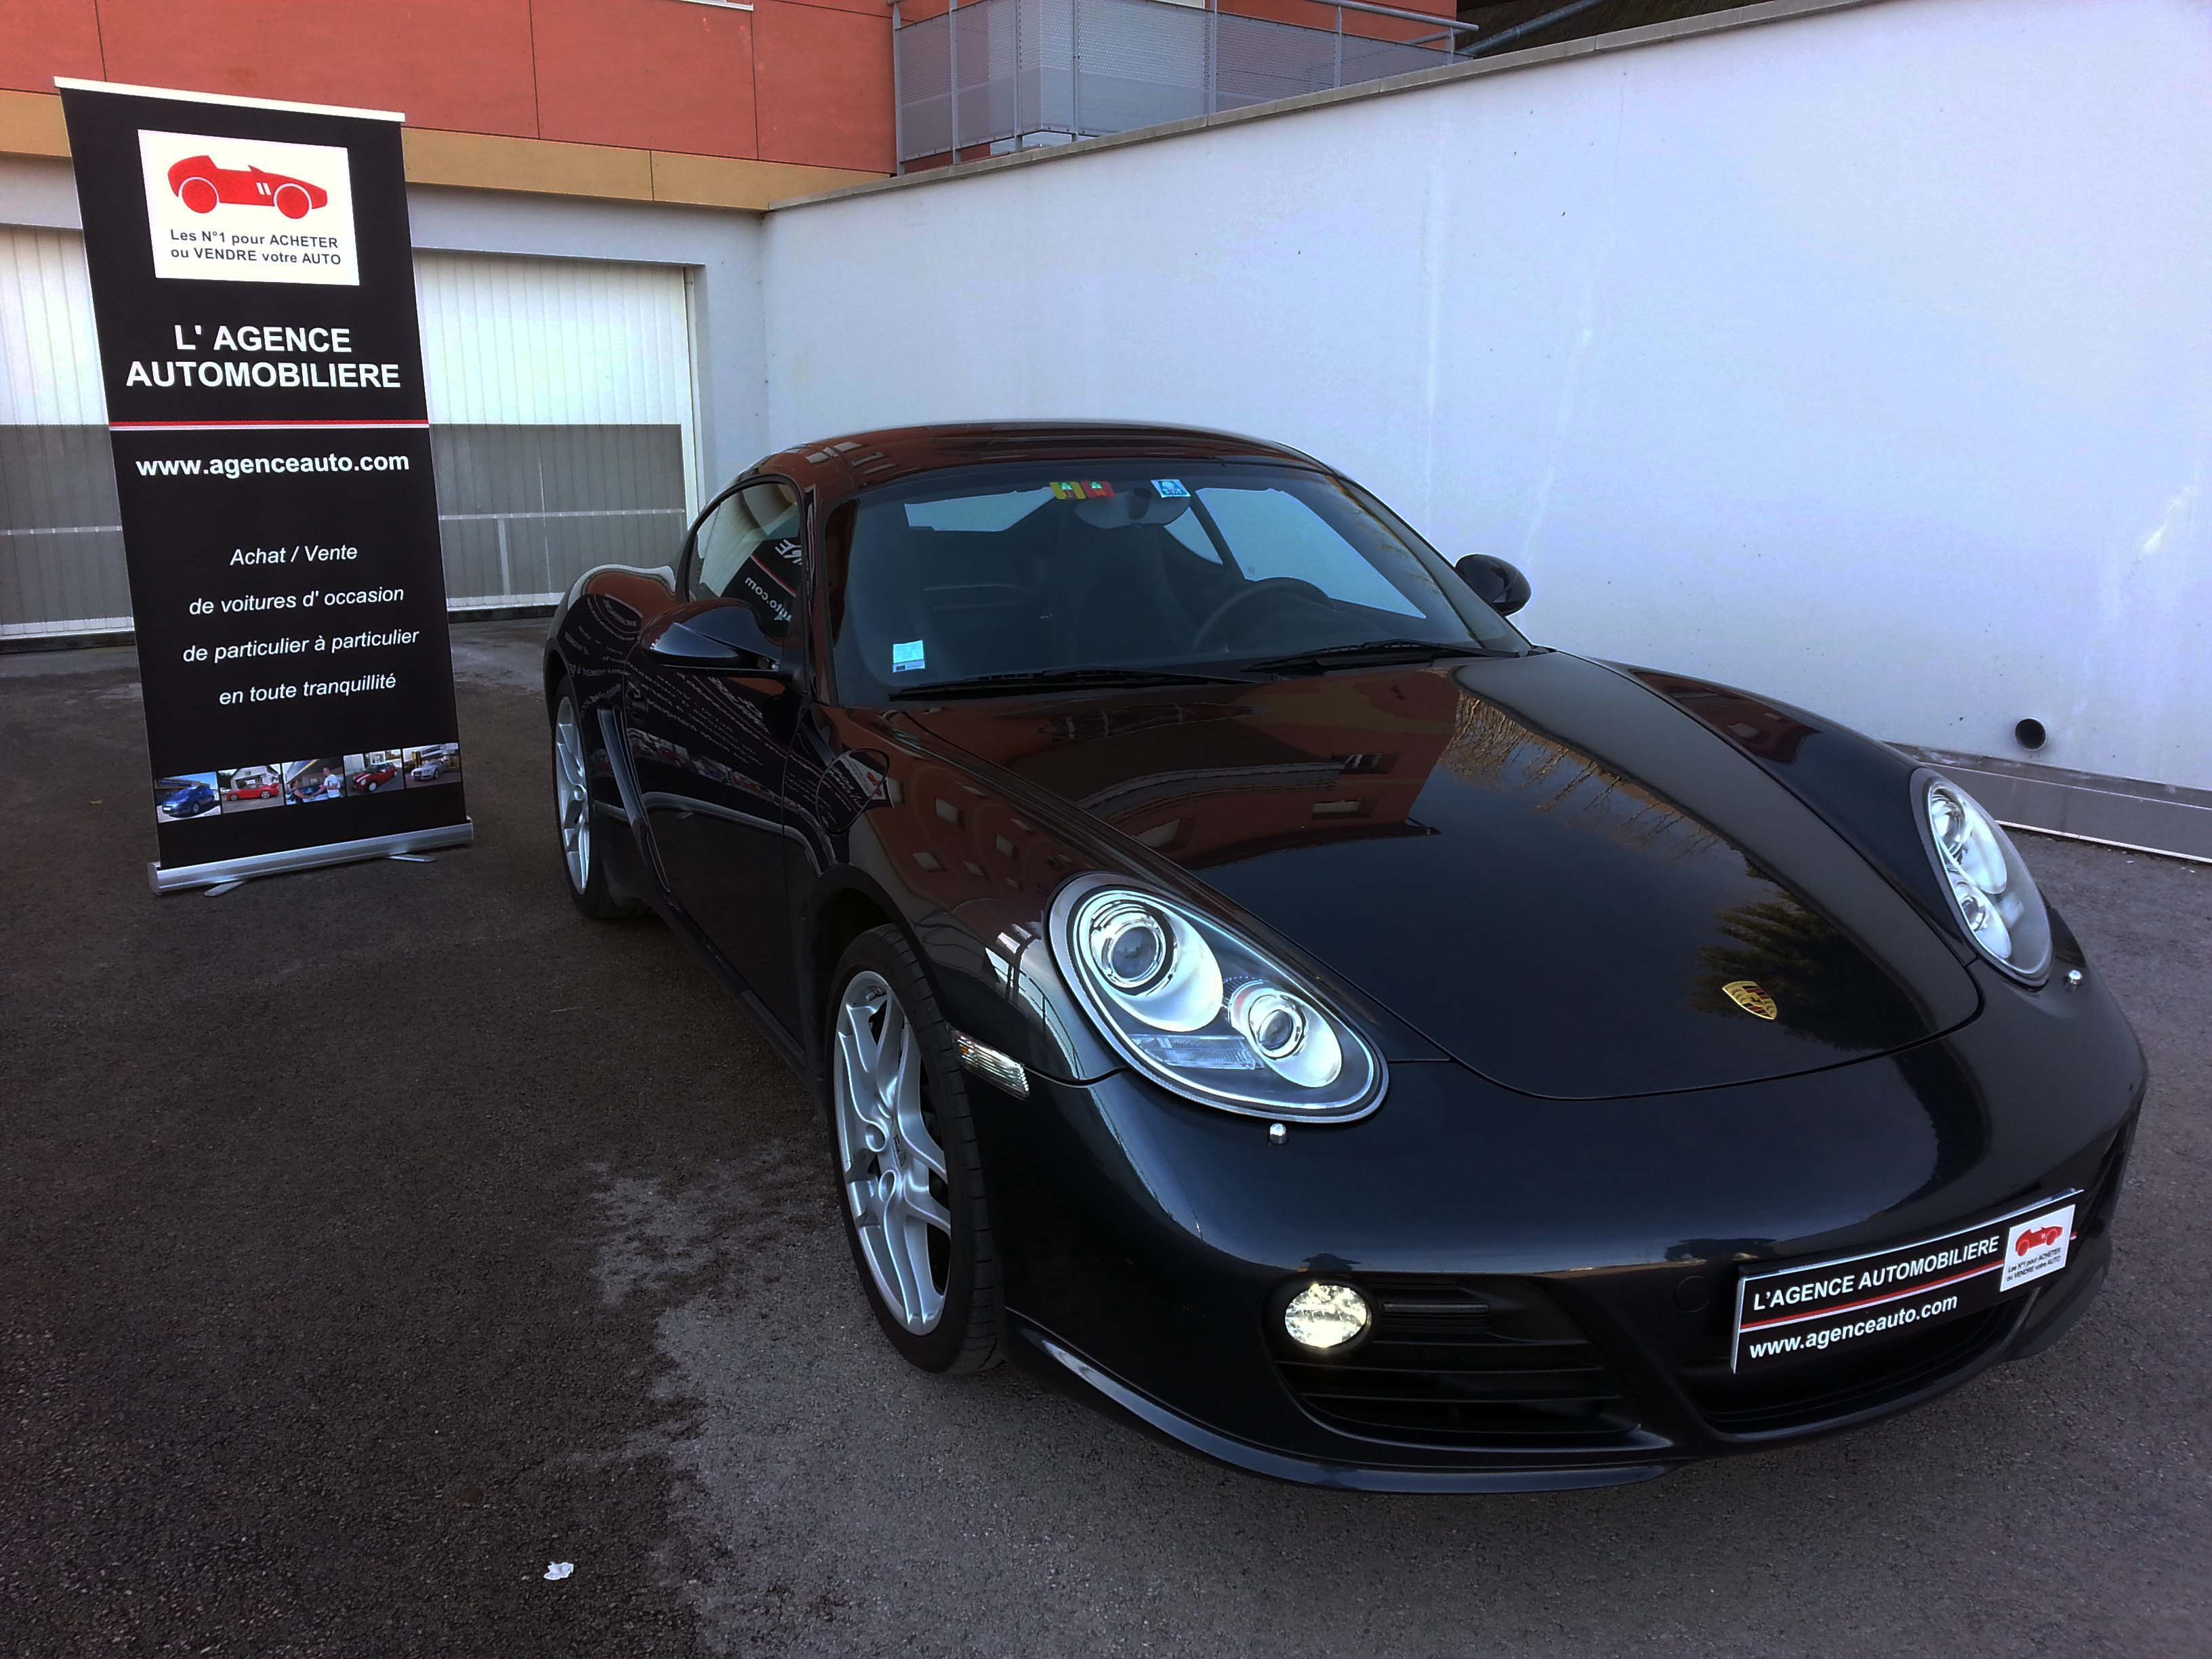 porsche cayman 987c2 2 9 i 265 occasion montbeliard pas cher voiture occasion doubs 25400. Black Bedroom Furniture Sets. Home Design Ideas